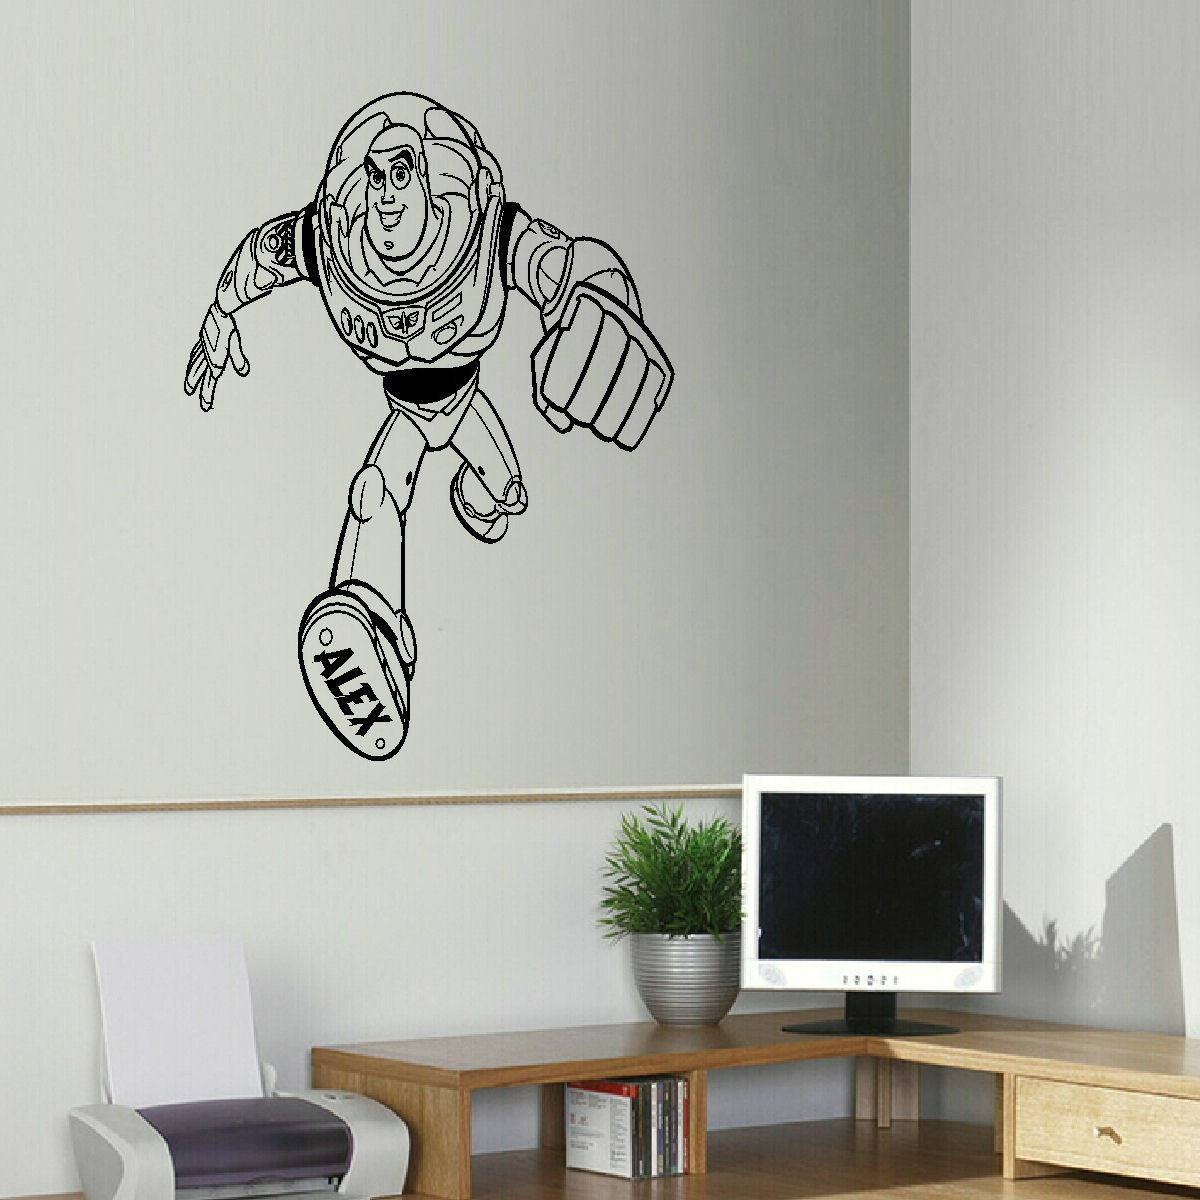 Bespoke Graphics – Childrens Wall Art Decals Stickers Inside Current Toy Story Wall Art (View 15 of 30)